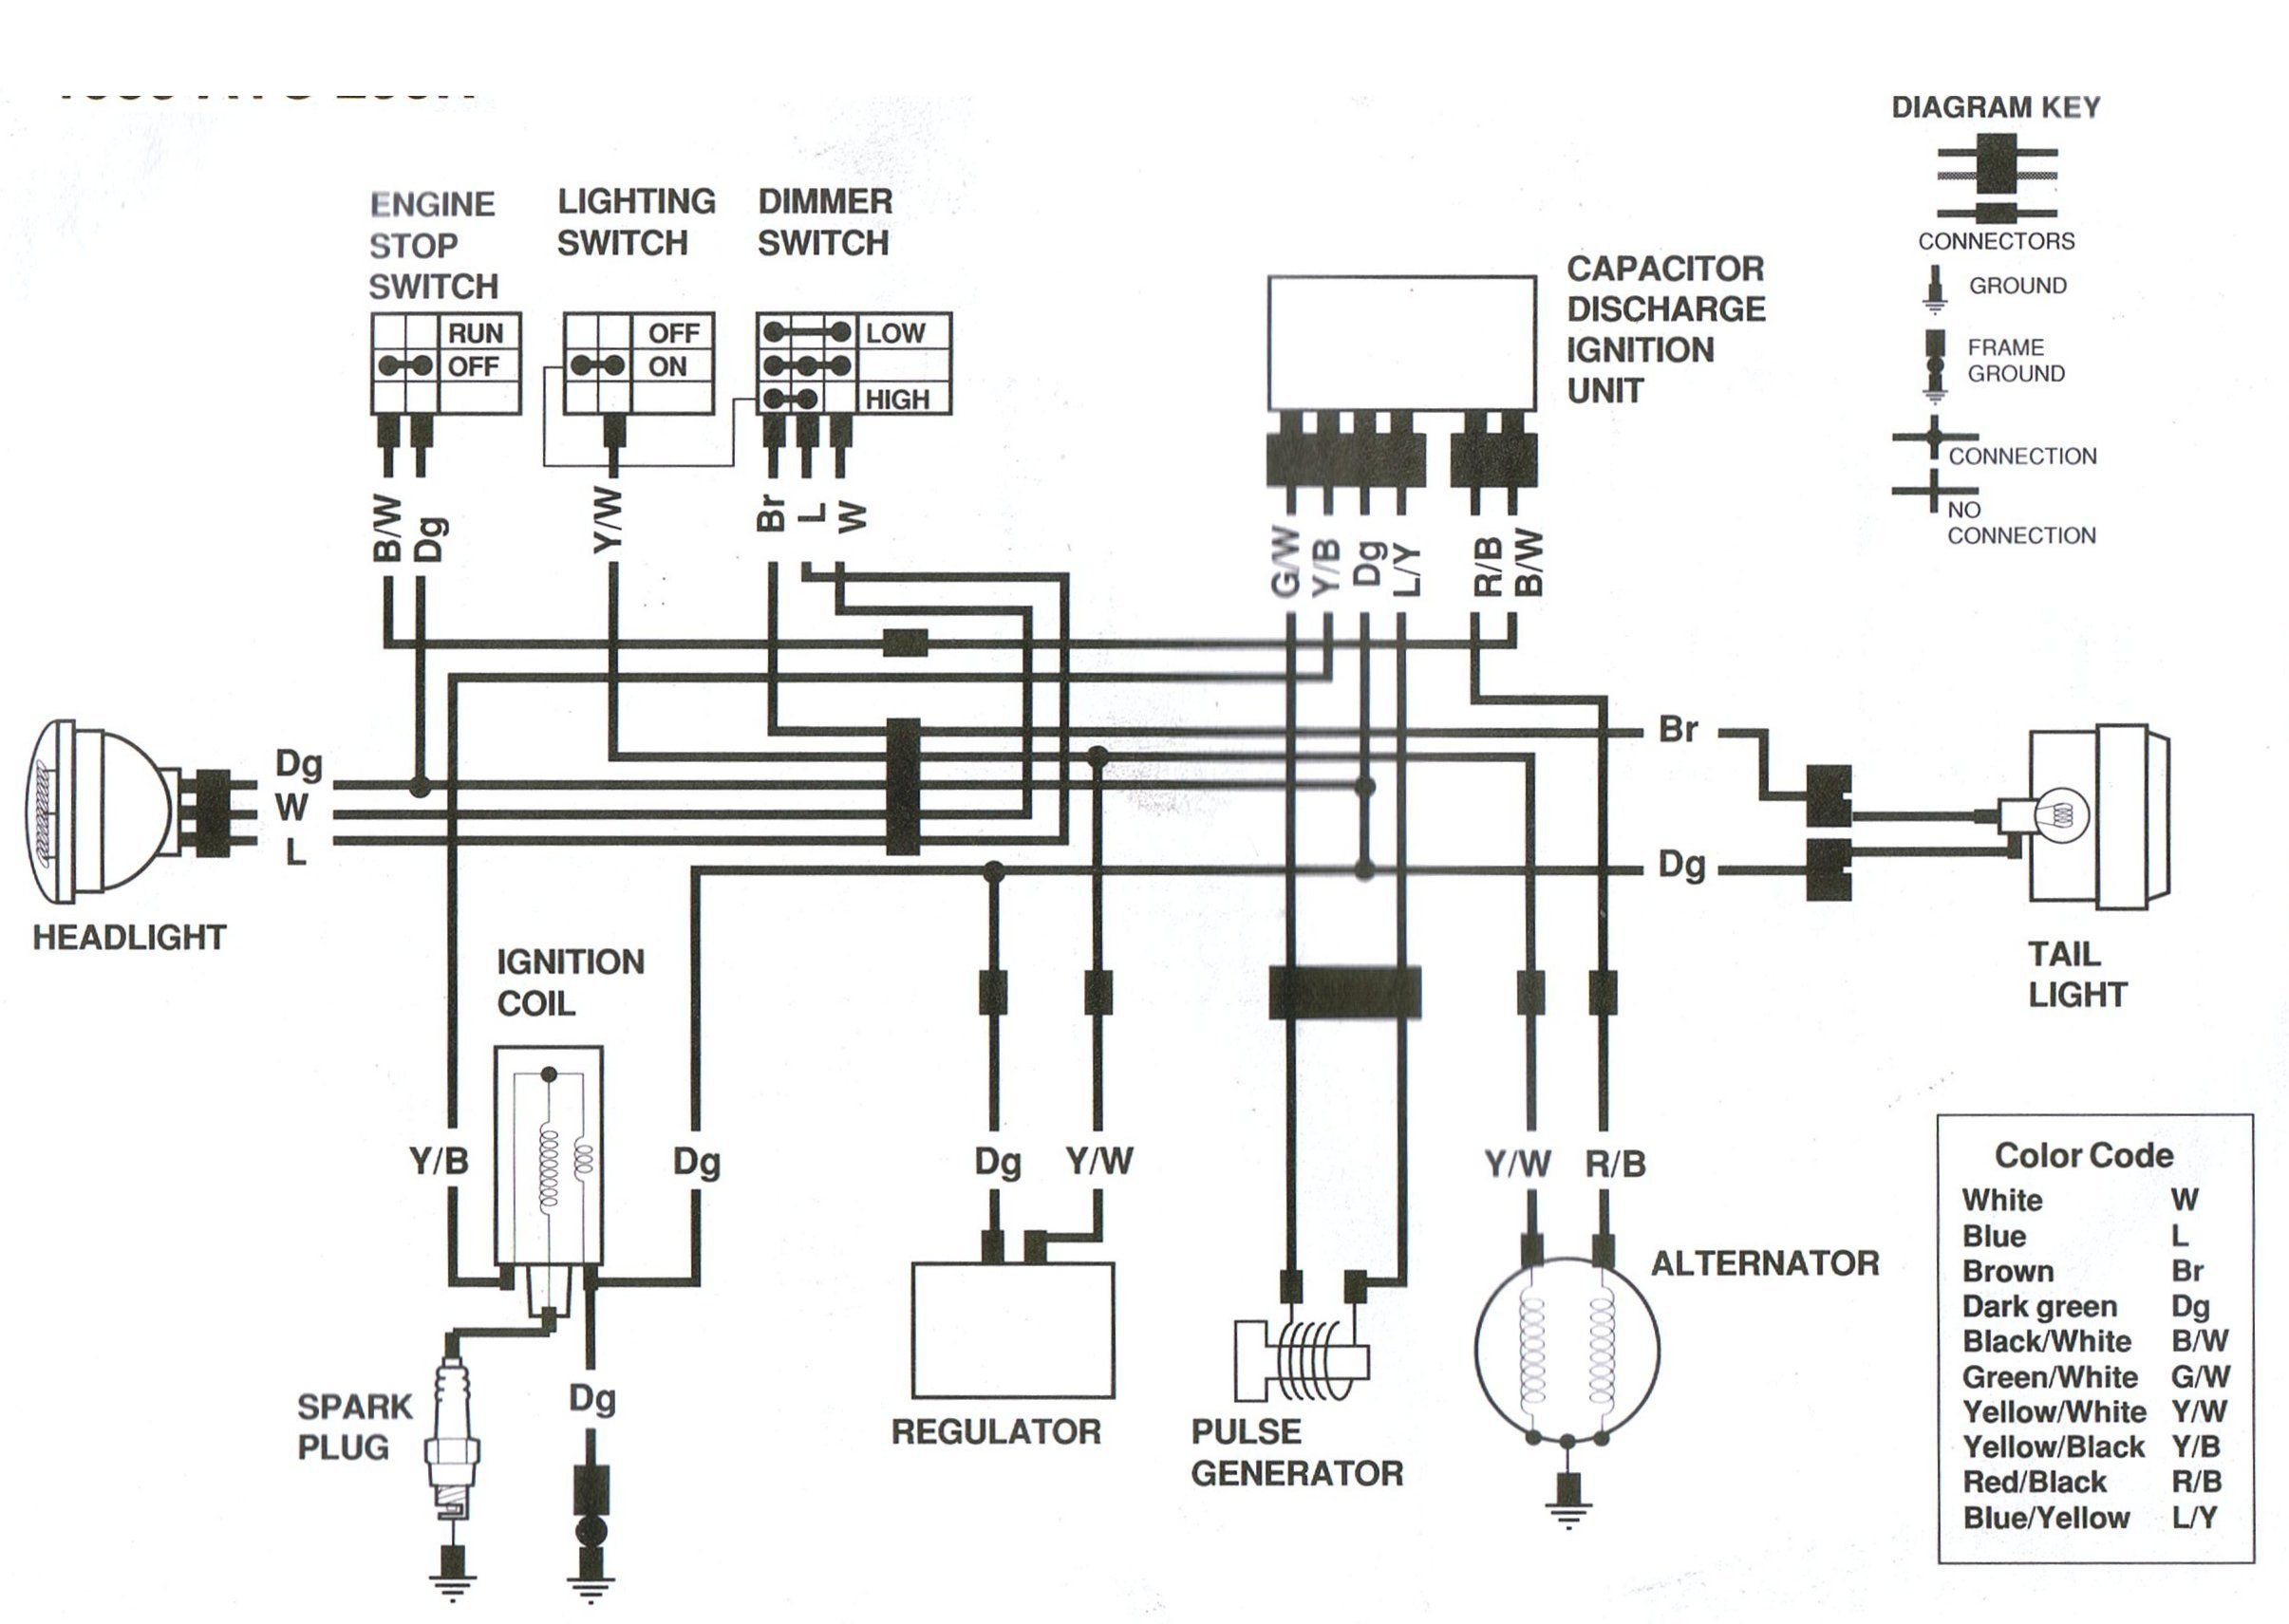 250r wiring diagram  : wire diagram - findchart.co